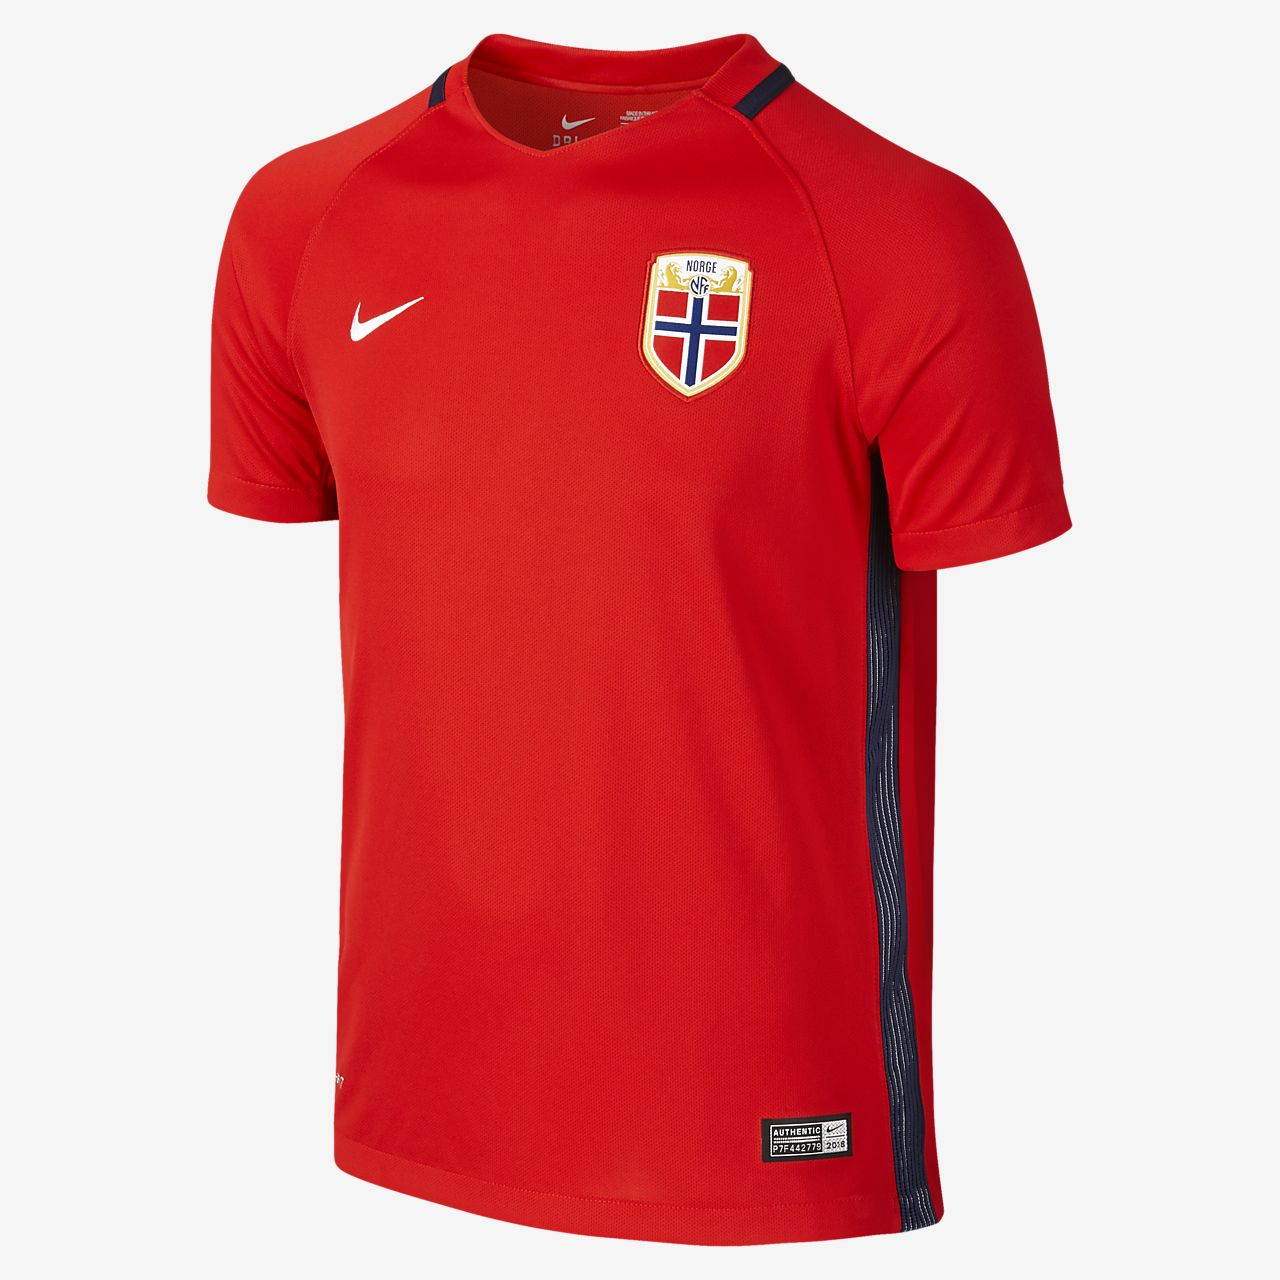 2016 Norway Stadium Home Older Kids' Football Shirt (XS-XL)